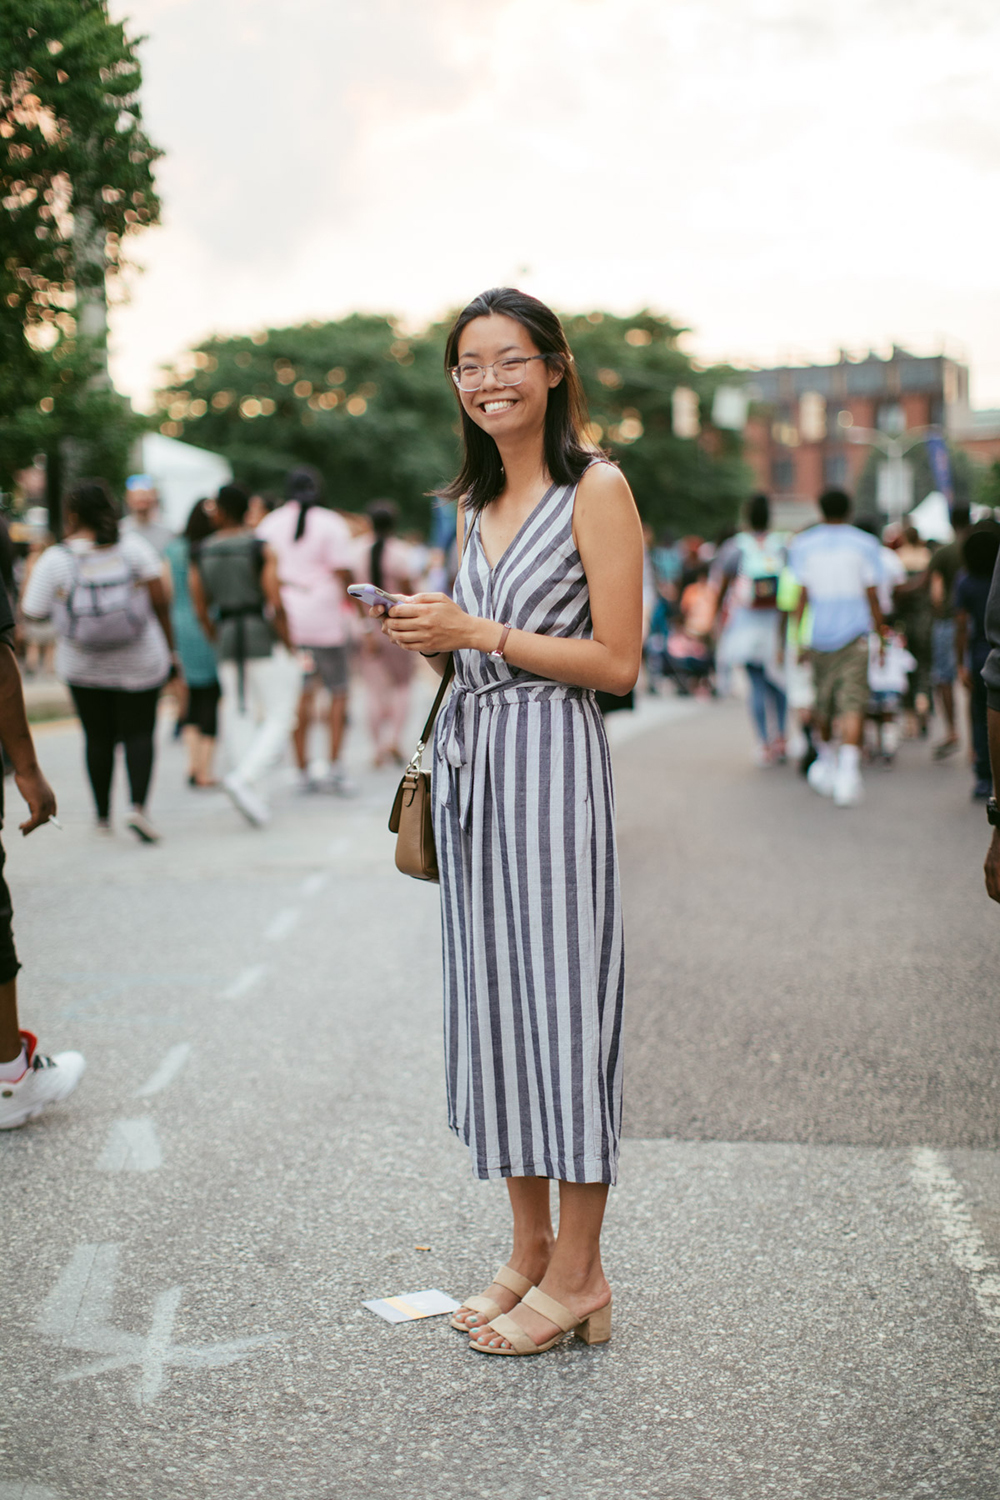 Artscape-Chelsea-Zou-Street-Style-at-Baltimore-2018-Artscape-photography-by-Armenyl-22.jpg#asset:64075